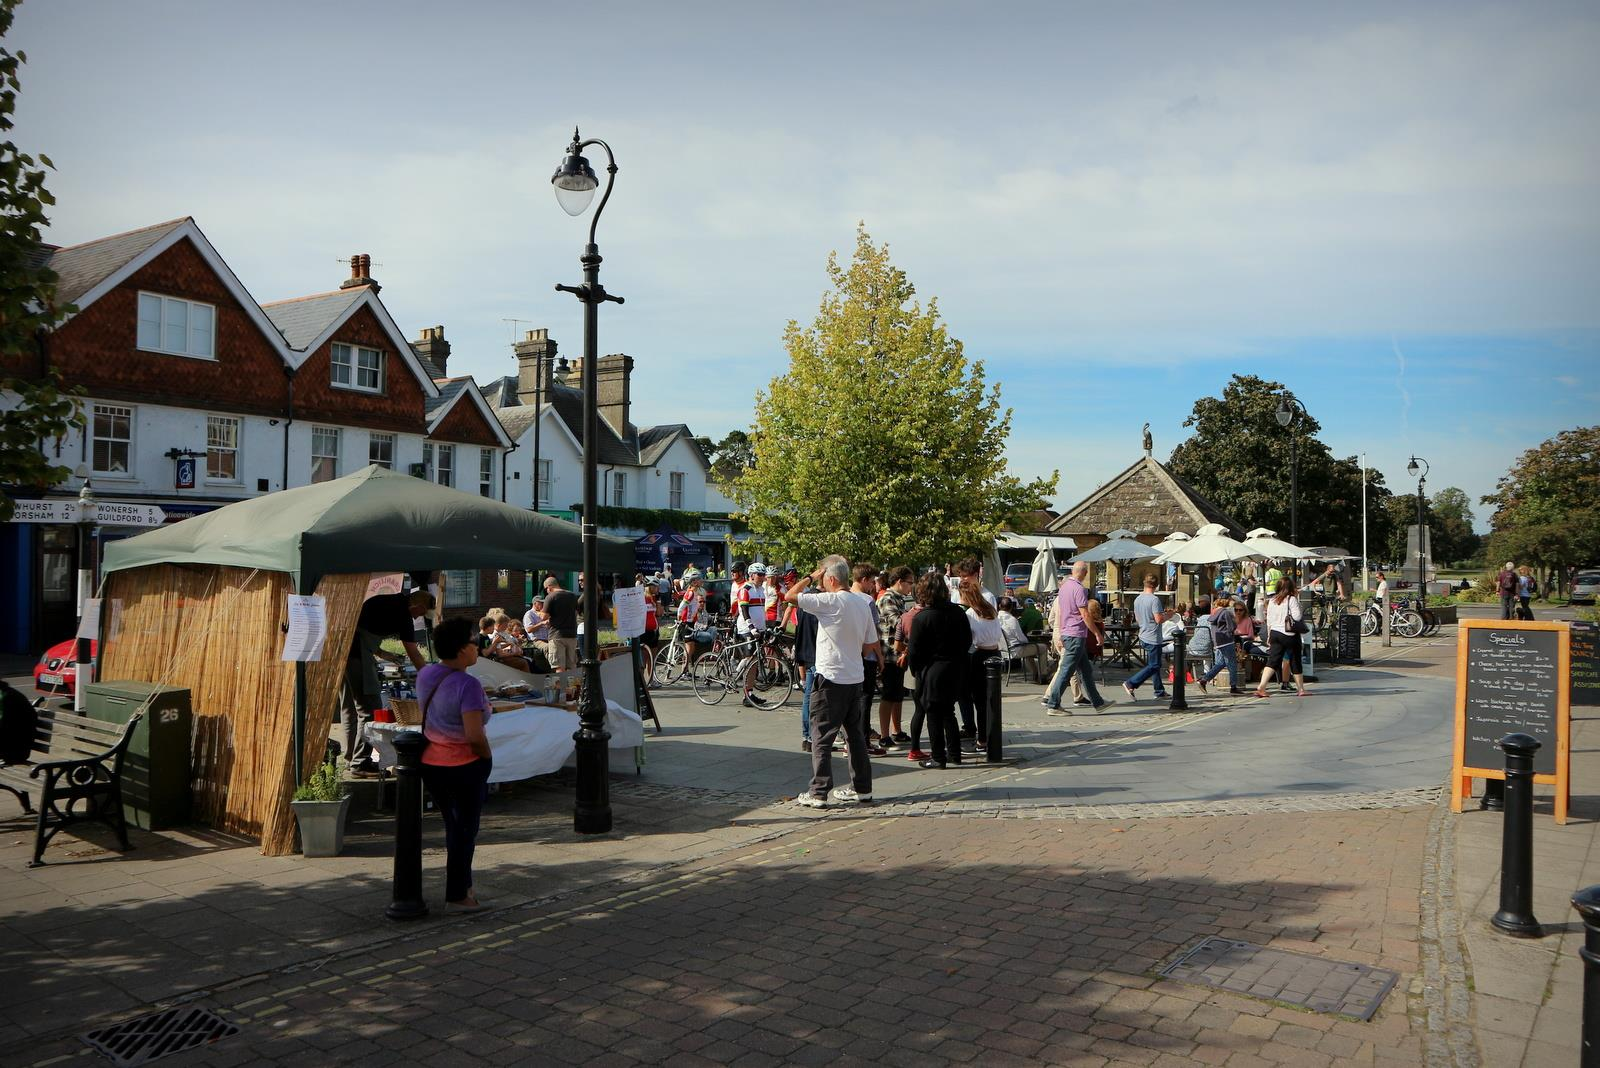 Cranleigh Chamber of Commerce reflects and looks to the future